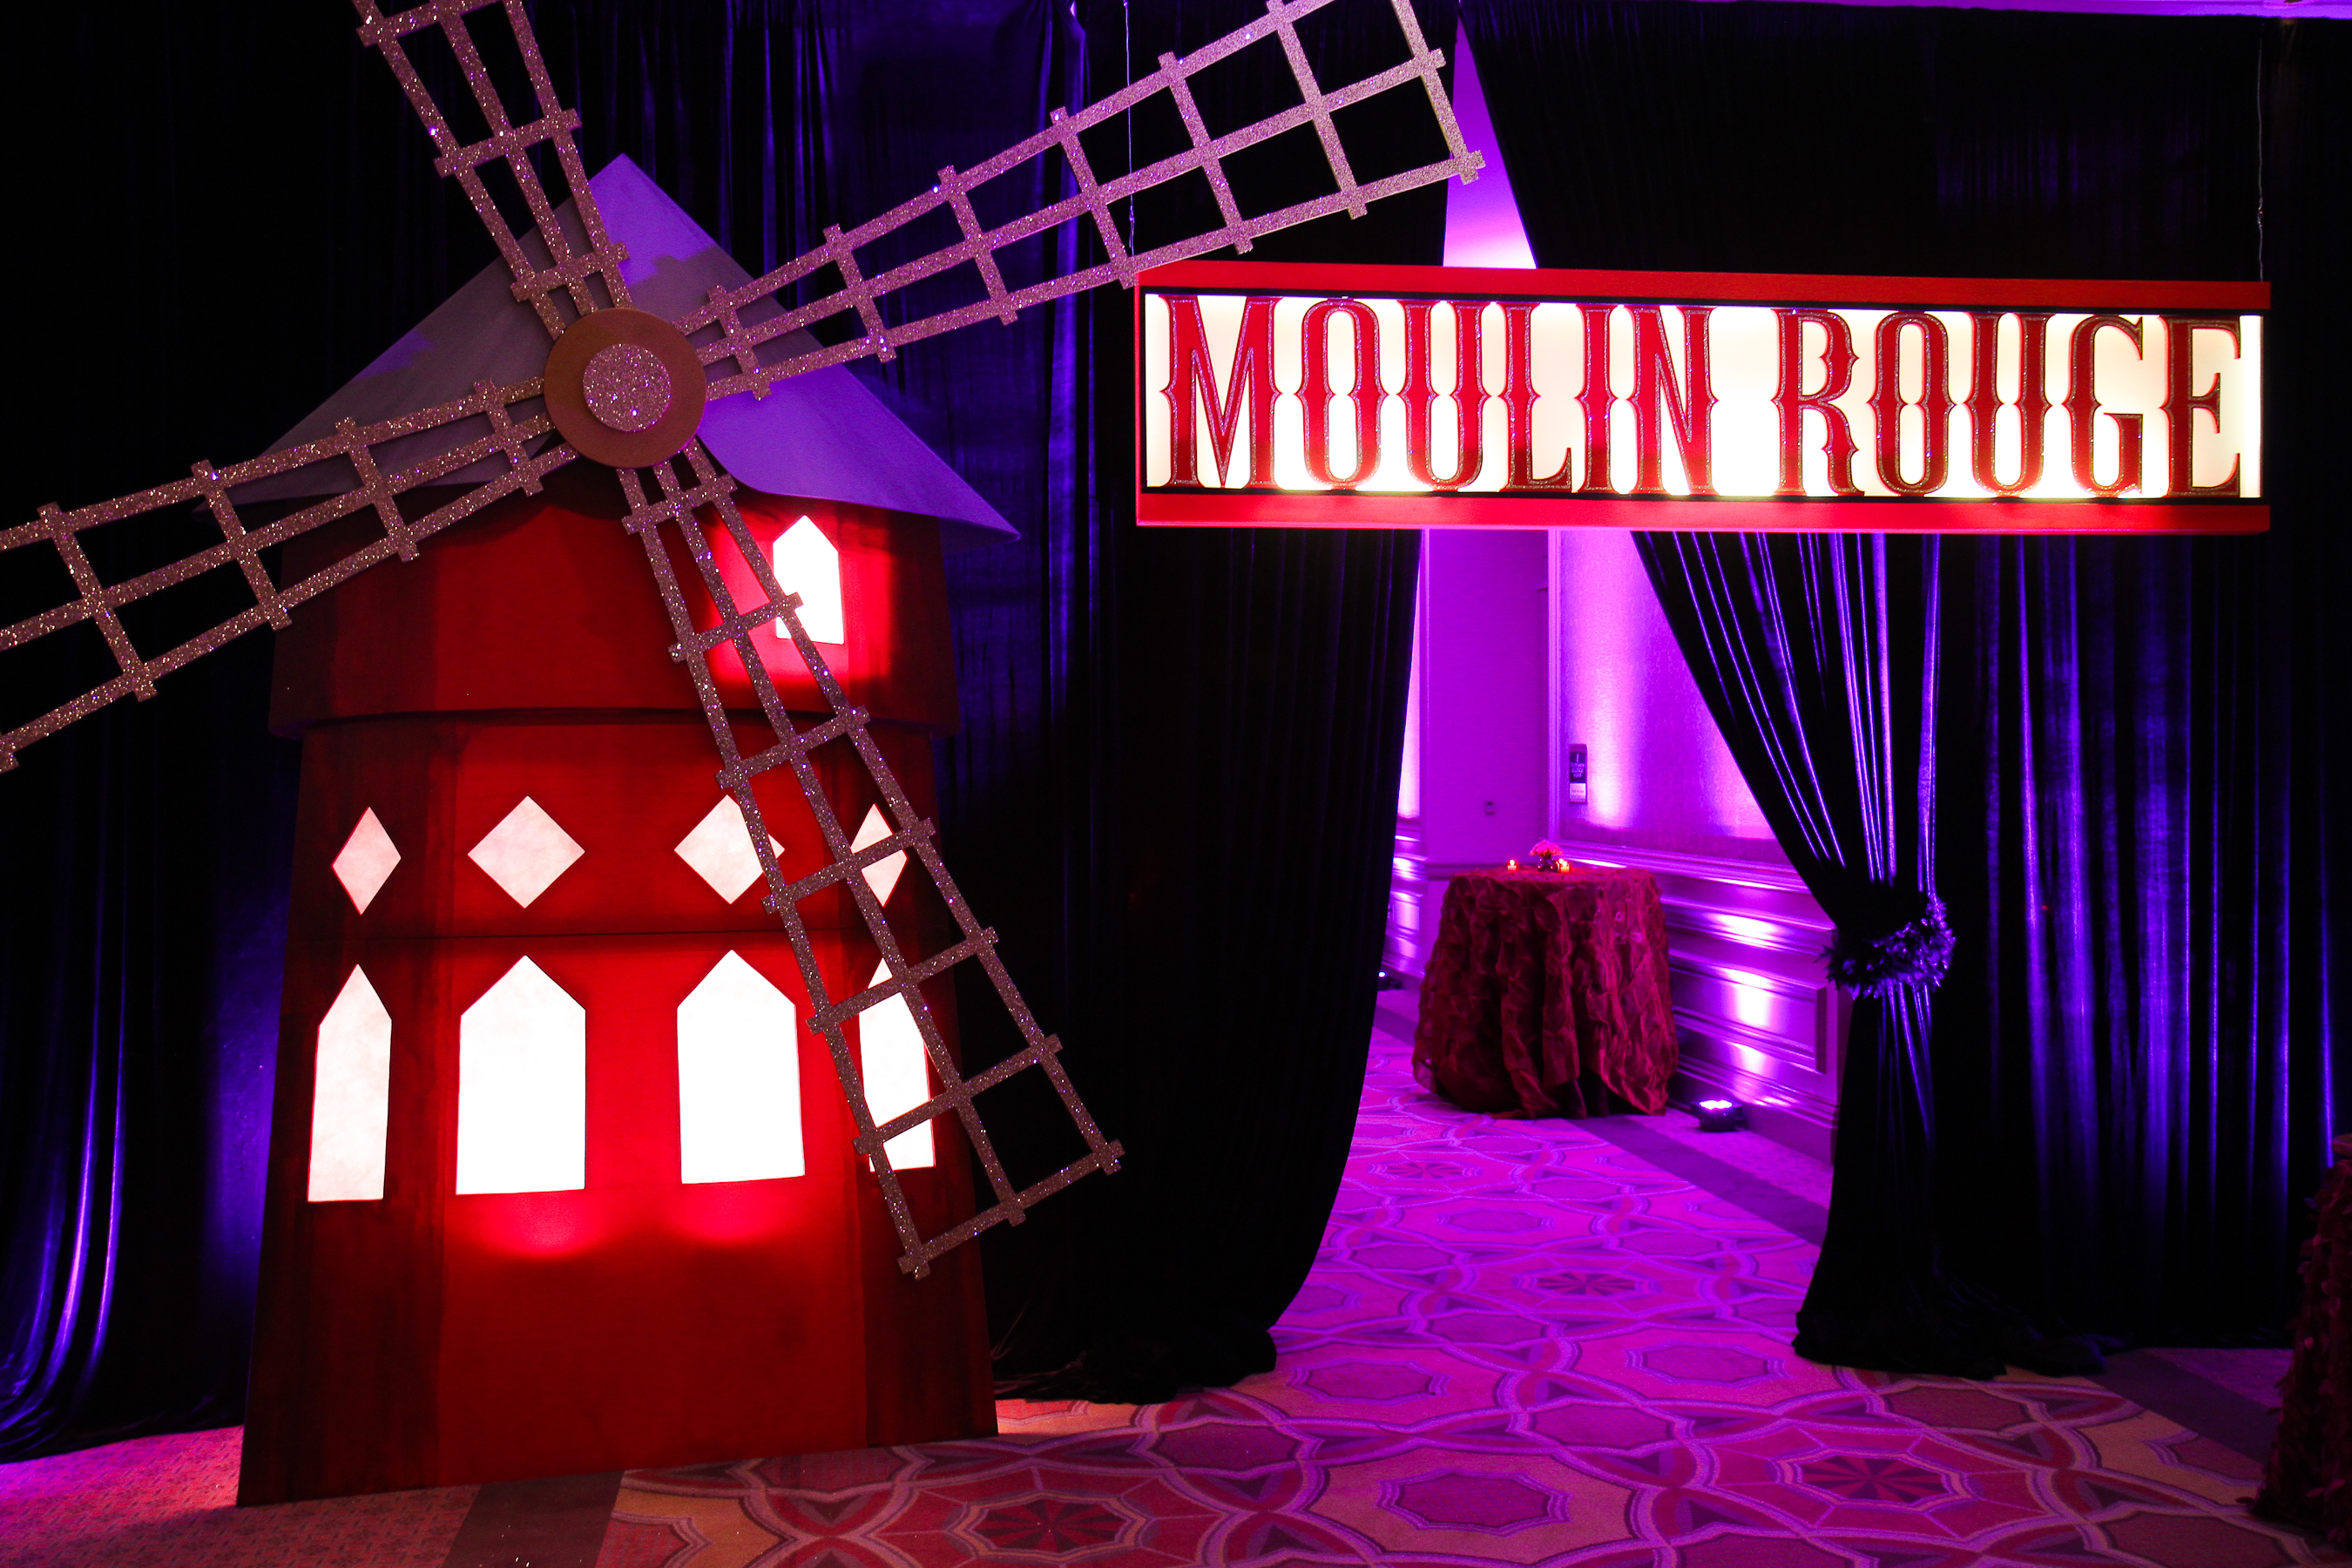 moulin-rouge-entrance-corporate-events.jpg